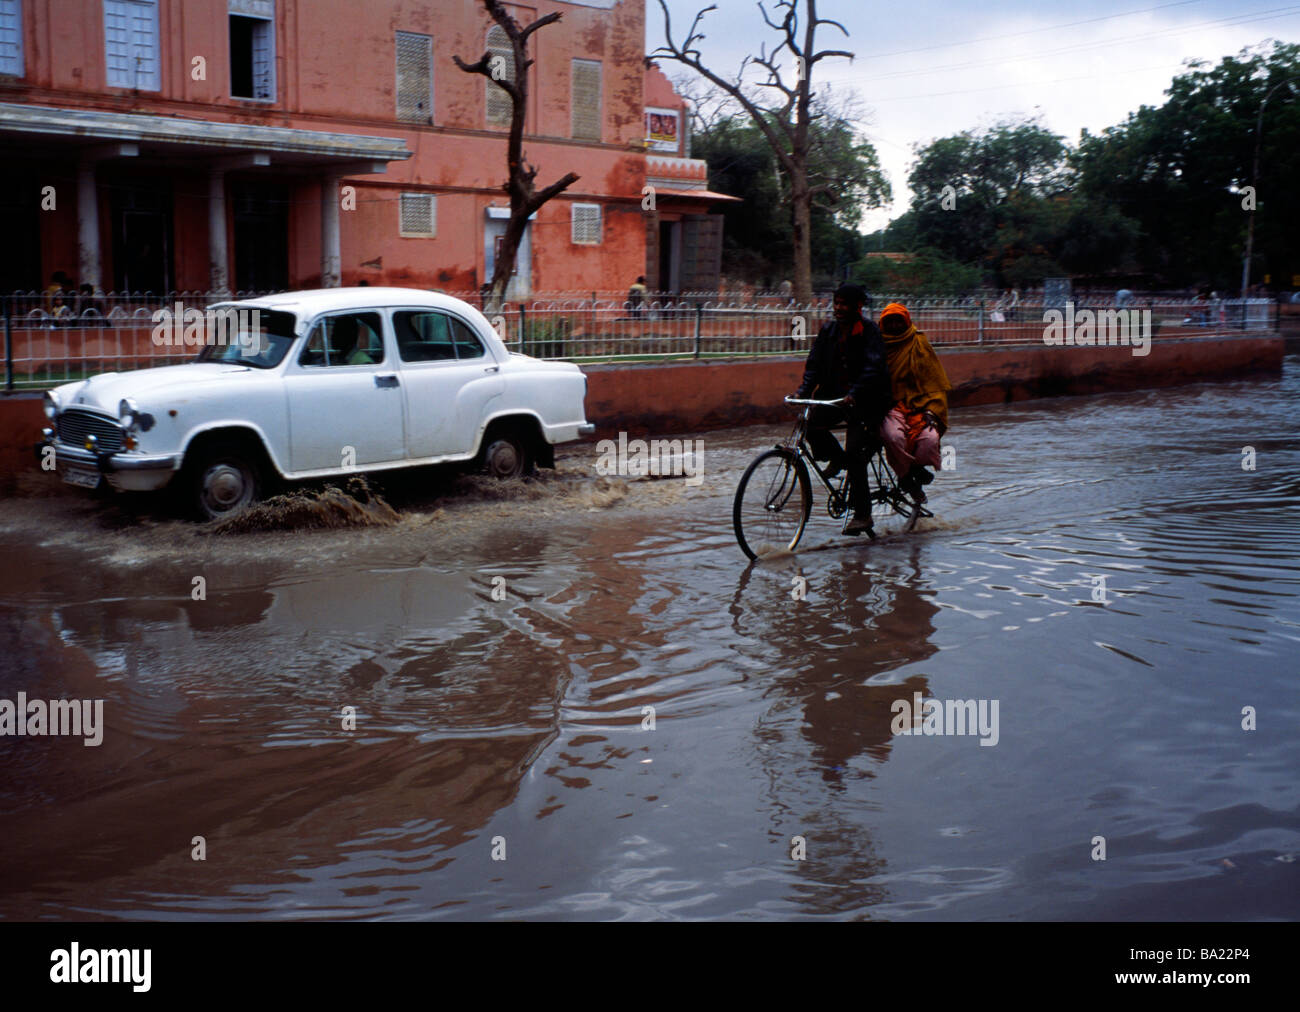 Flood Water Stock Photos & Flood Water Stock Images - Alamy